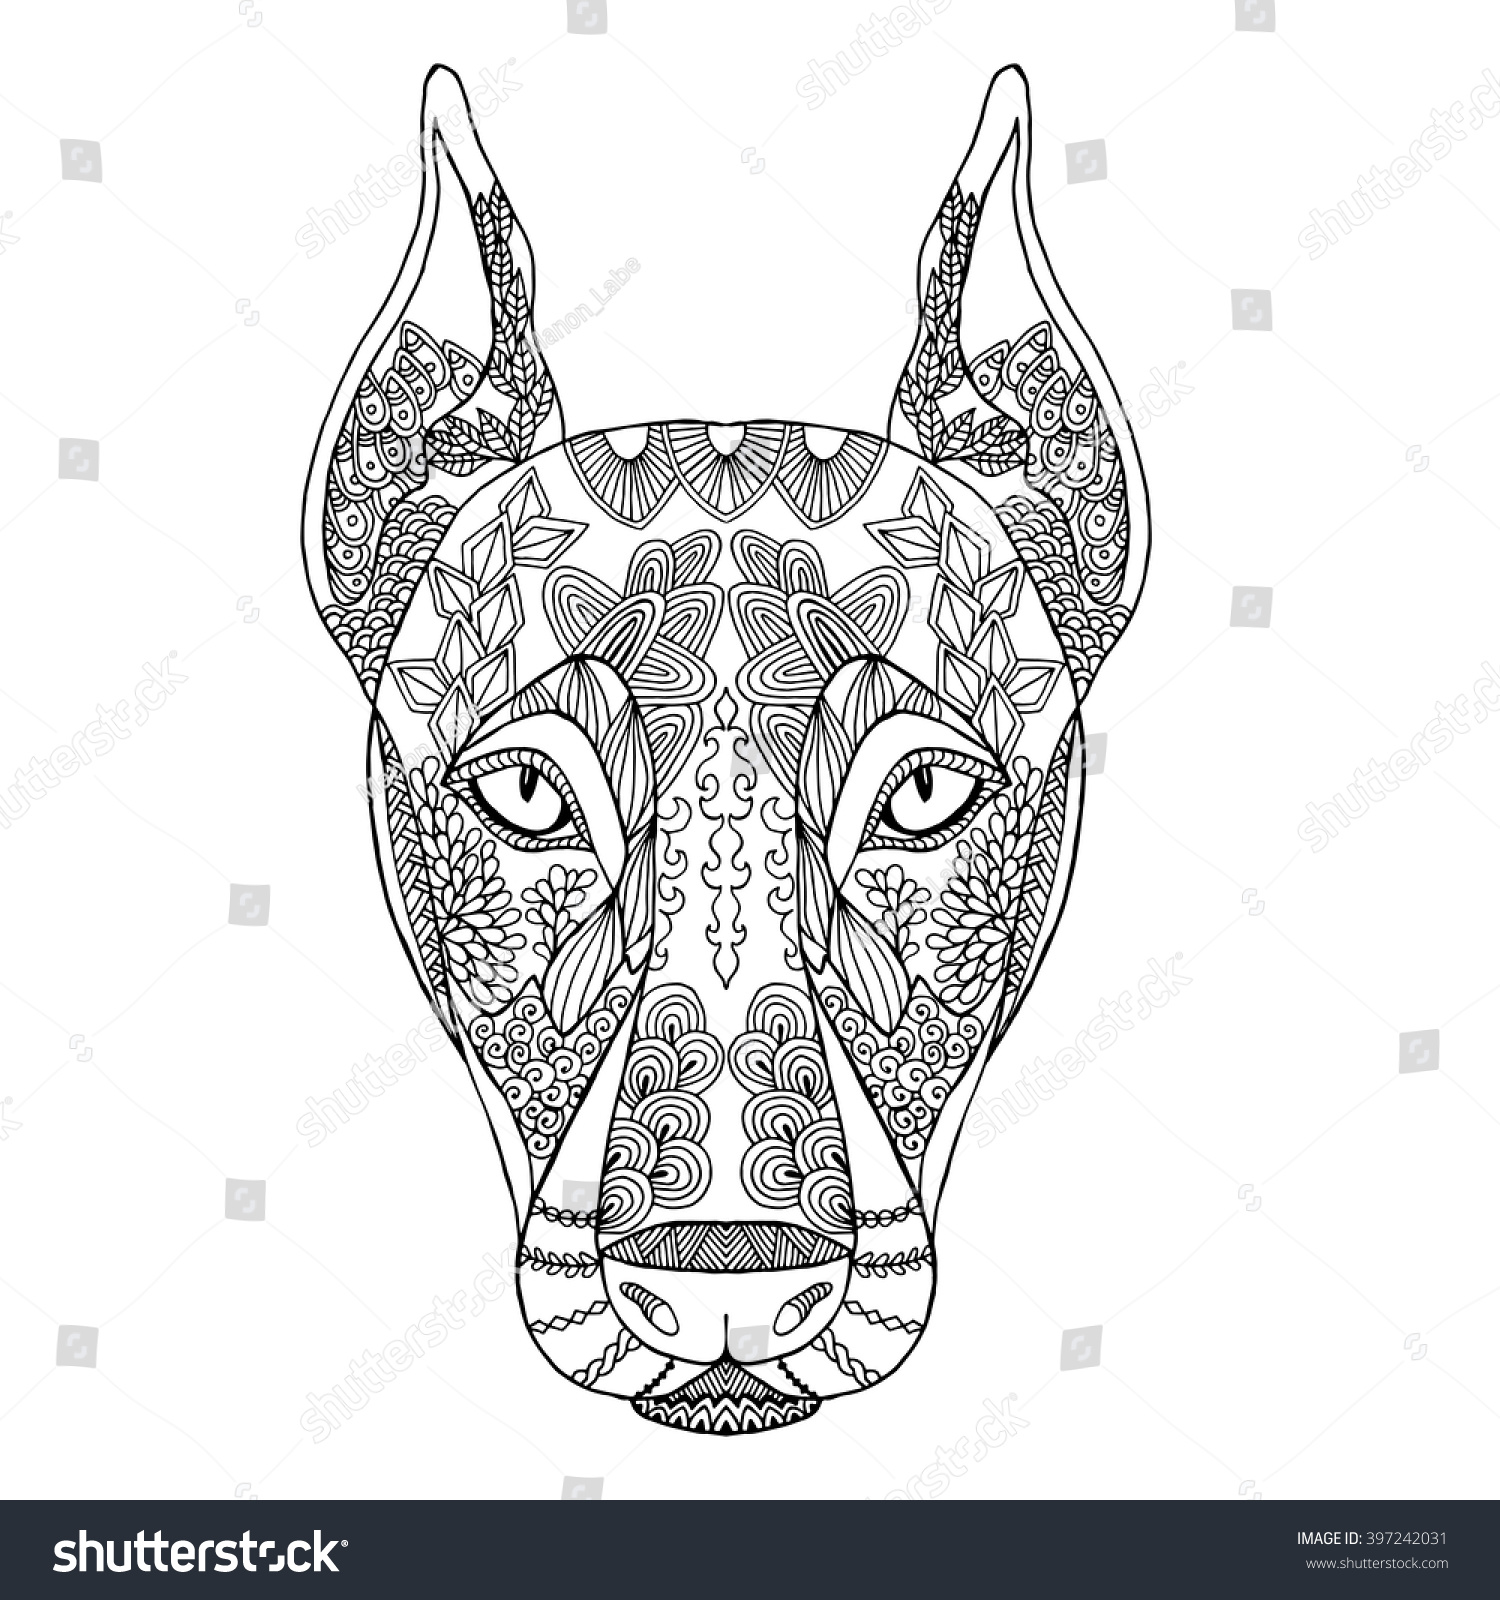 Royalty free zentangle stylized doodle vector of for Doberman coloring pages